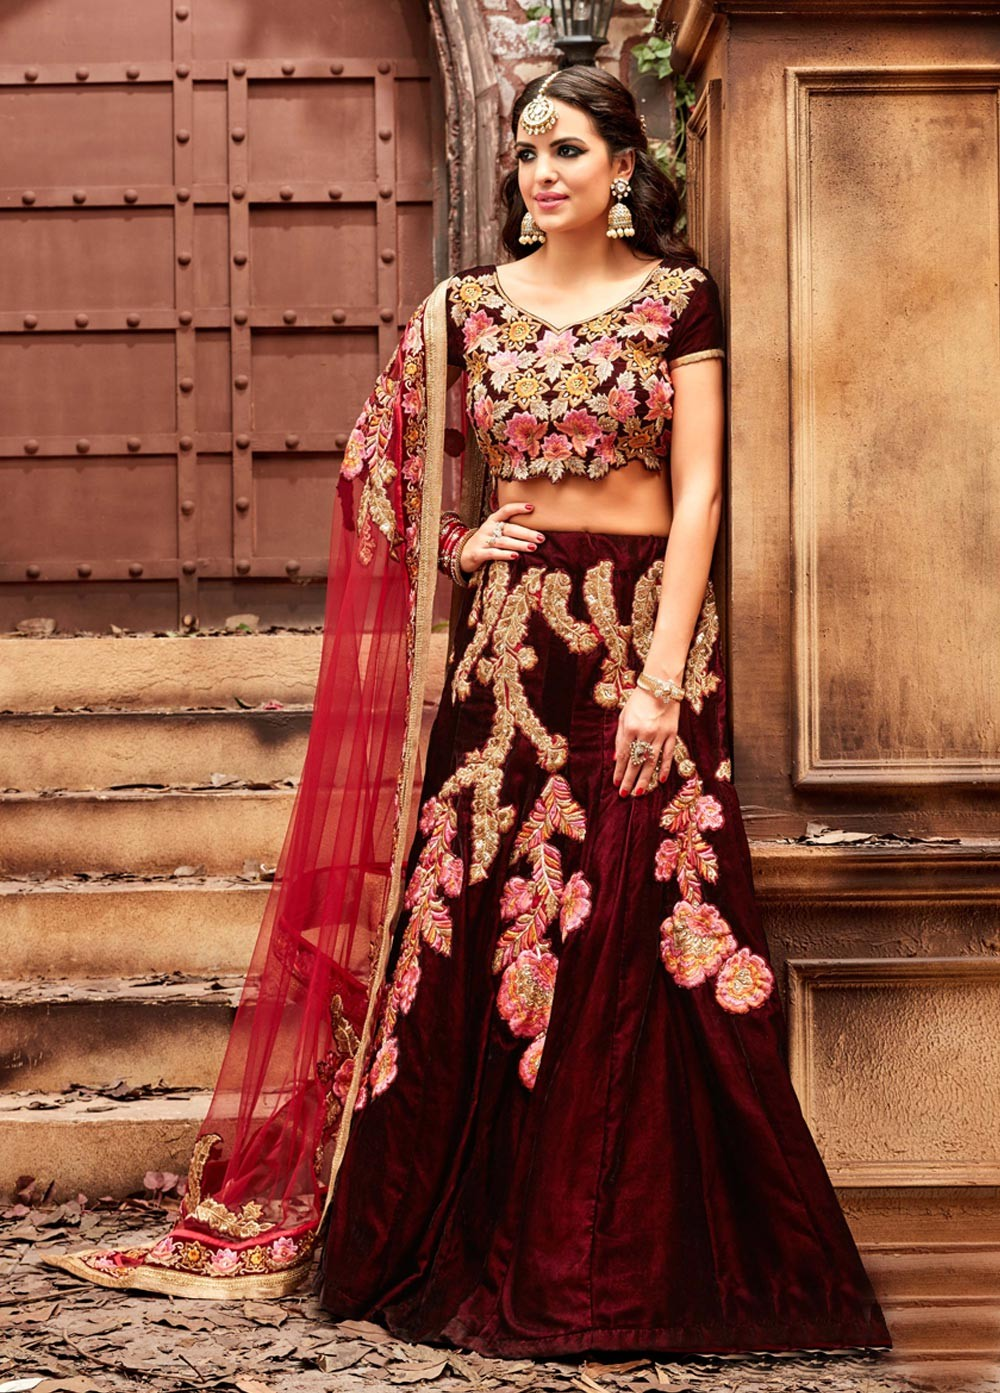 dda785616a Buy Maroon color velvet wedding lehenga choli in UK